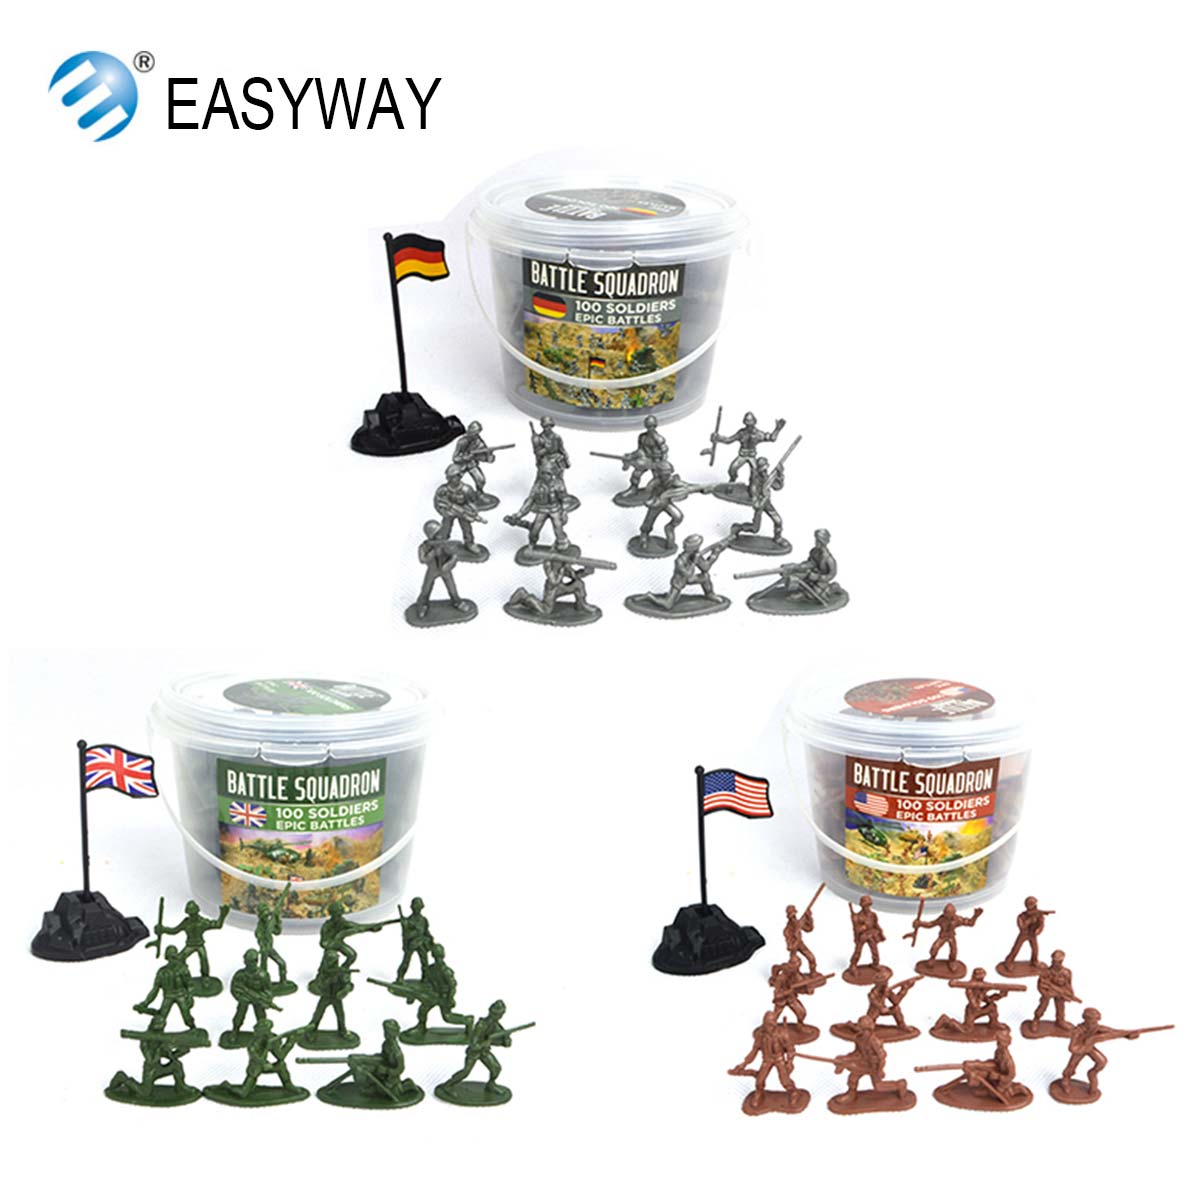 EASYWAY bottled 100pcs Plastic Soldier Figures Toys Games  12 models Classic Mini Plastic Military Soldier Action Figure Boy toyEASYWAY bottled 100pcs Plastic Soldier Figures Toys Games  12 models Classic Mini Plastic Military Soldier Action Figure Boy toy